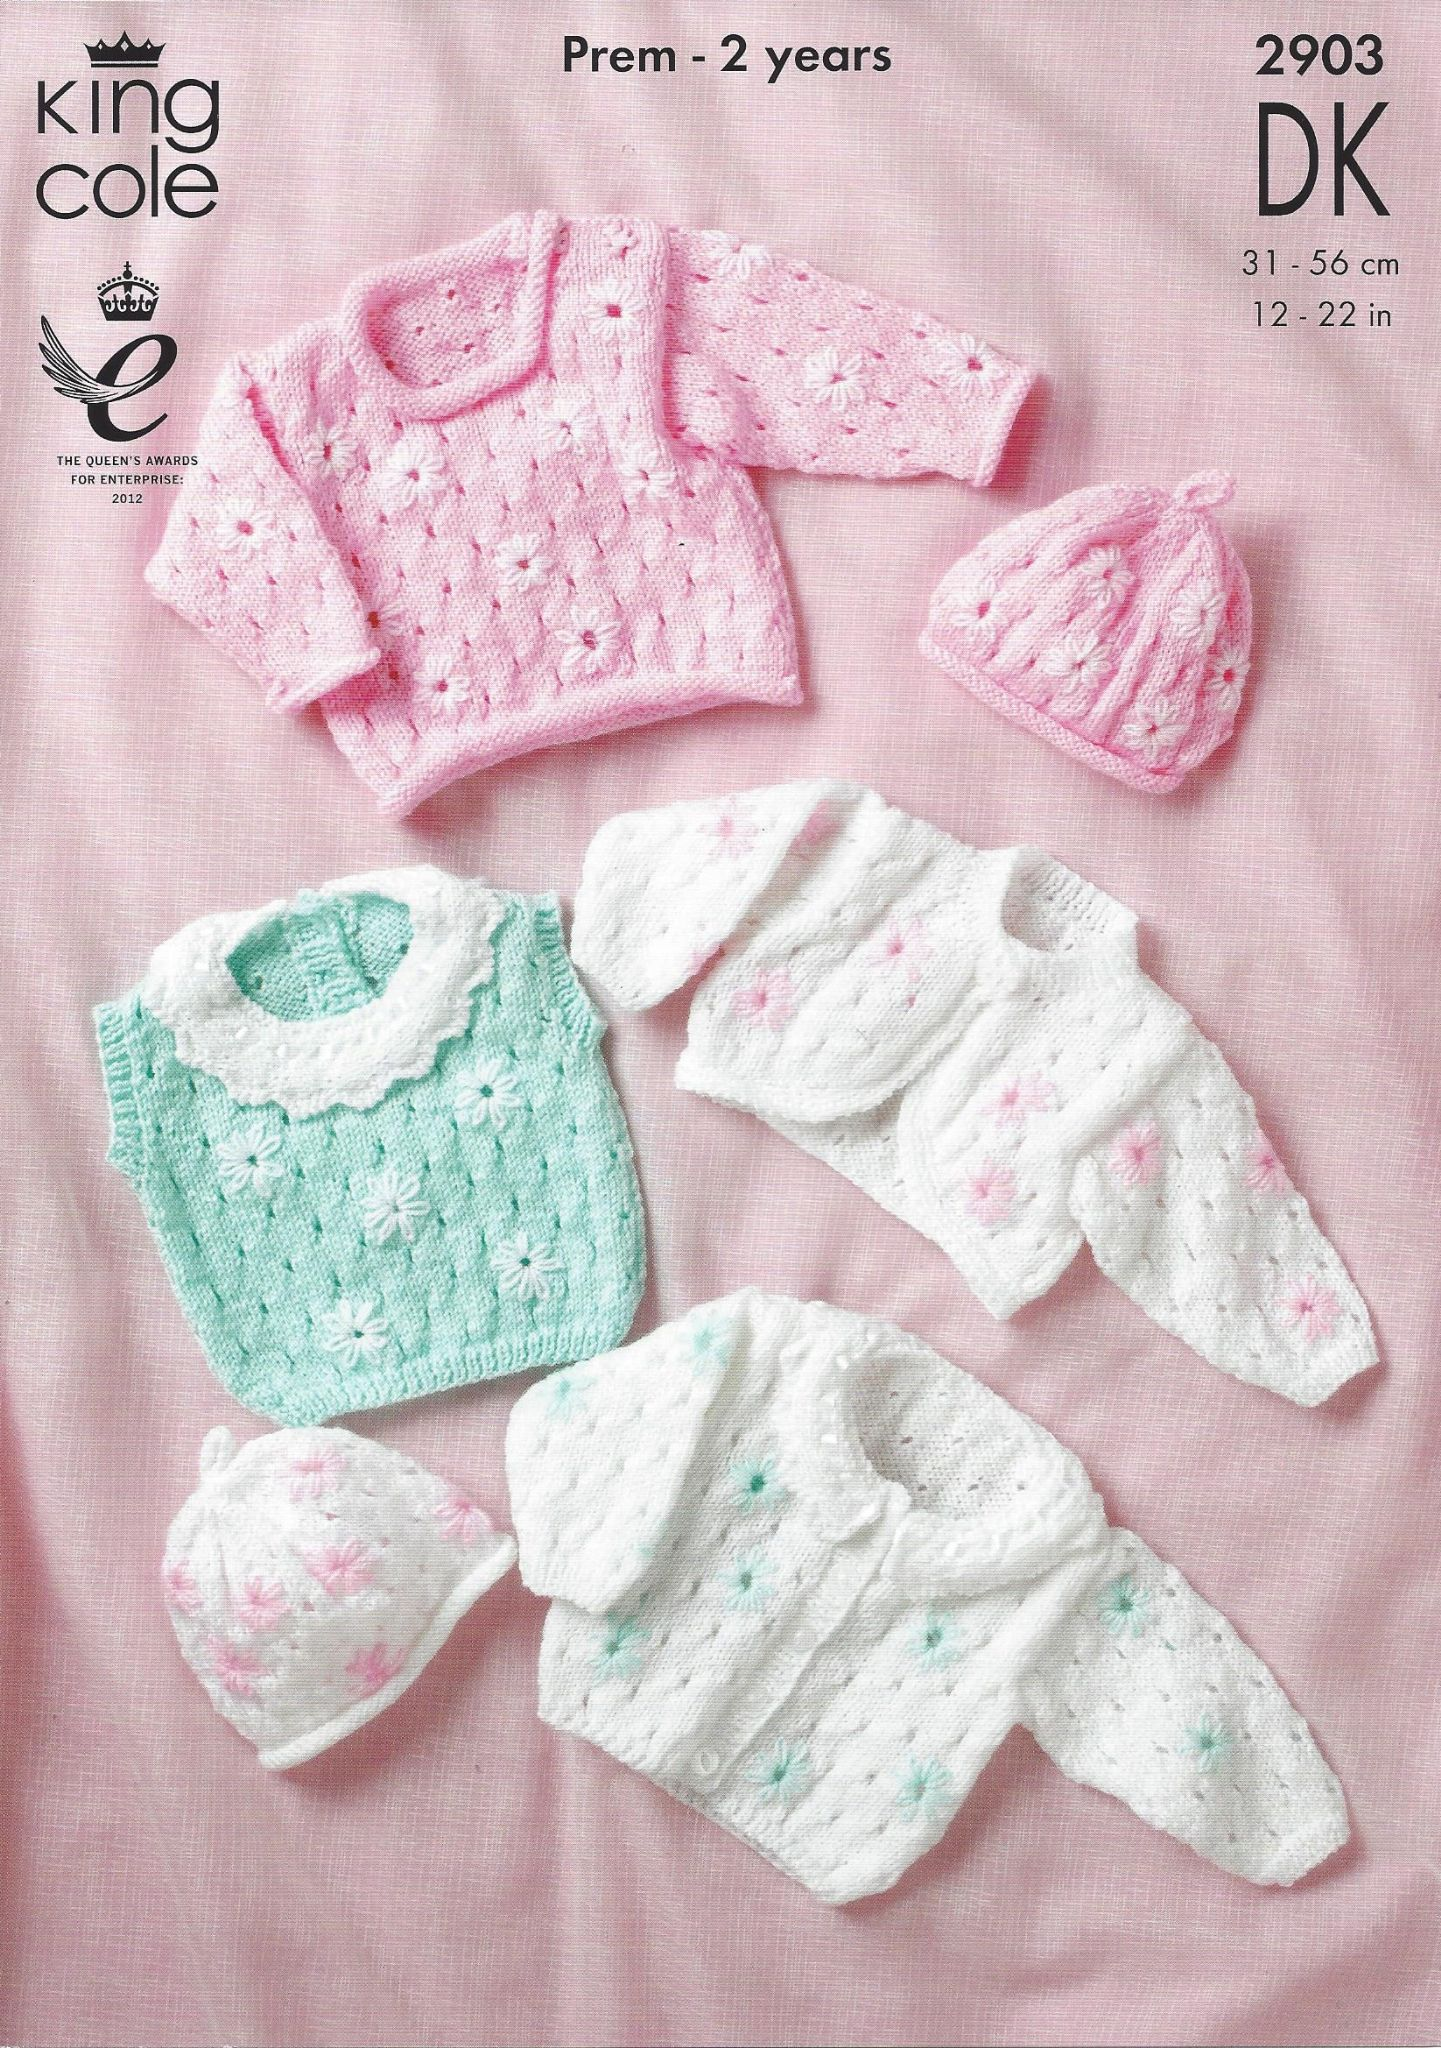 King Cole Baby DK Knitting Pattern - 2903 Cardigan Sweater Top Bolero & Hat